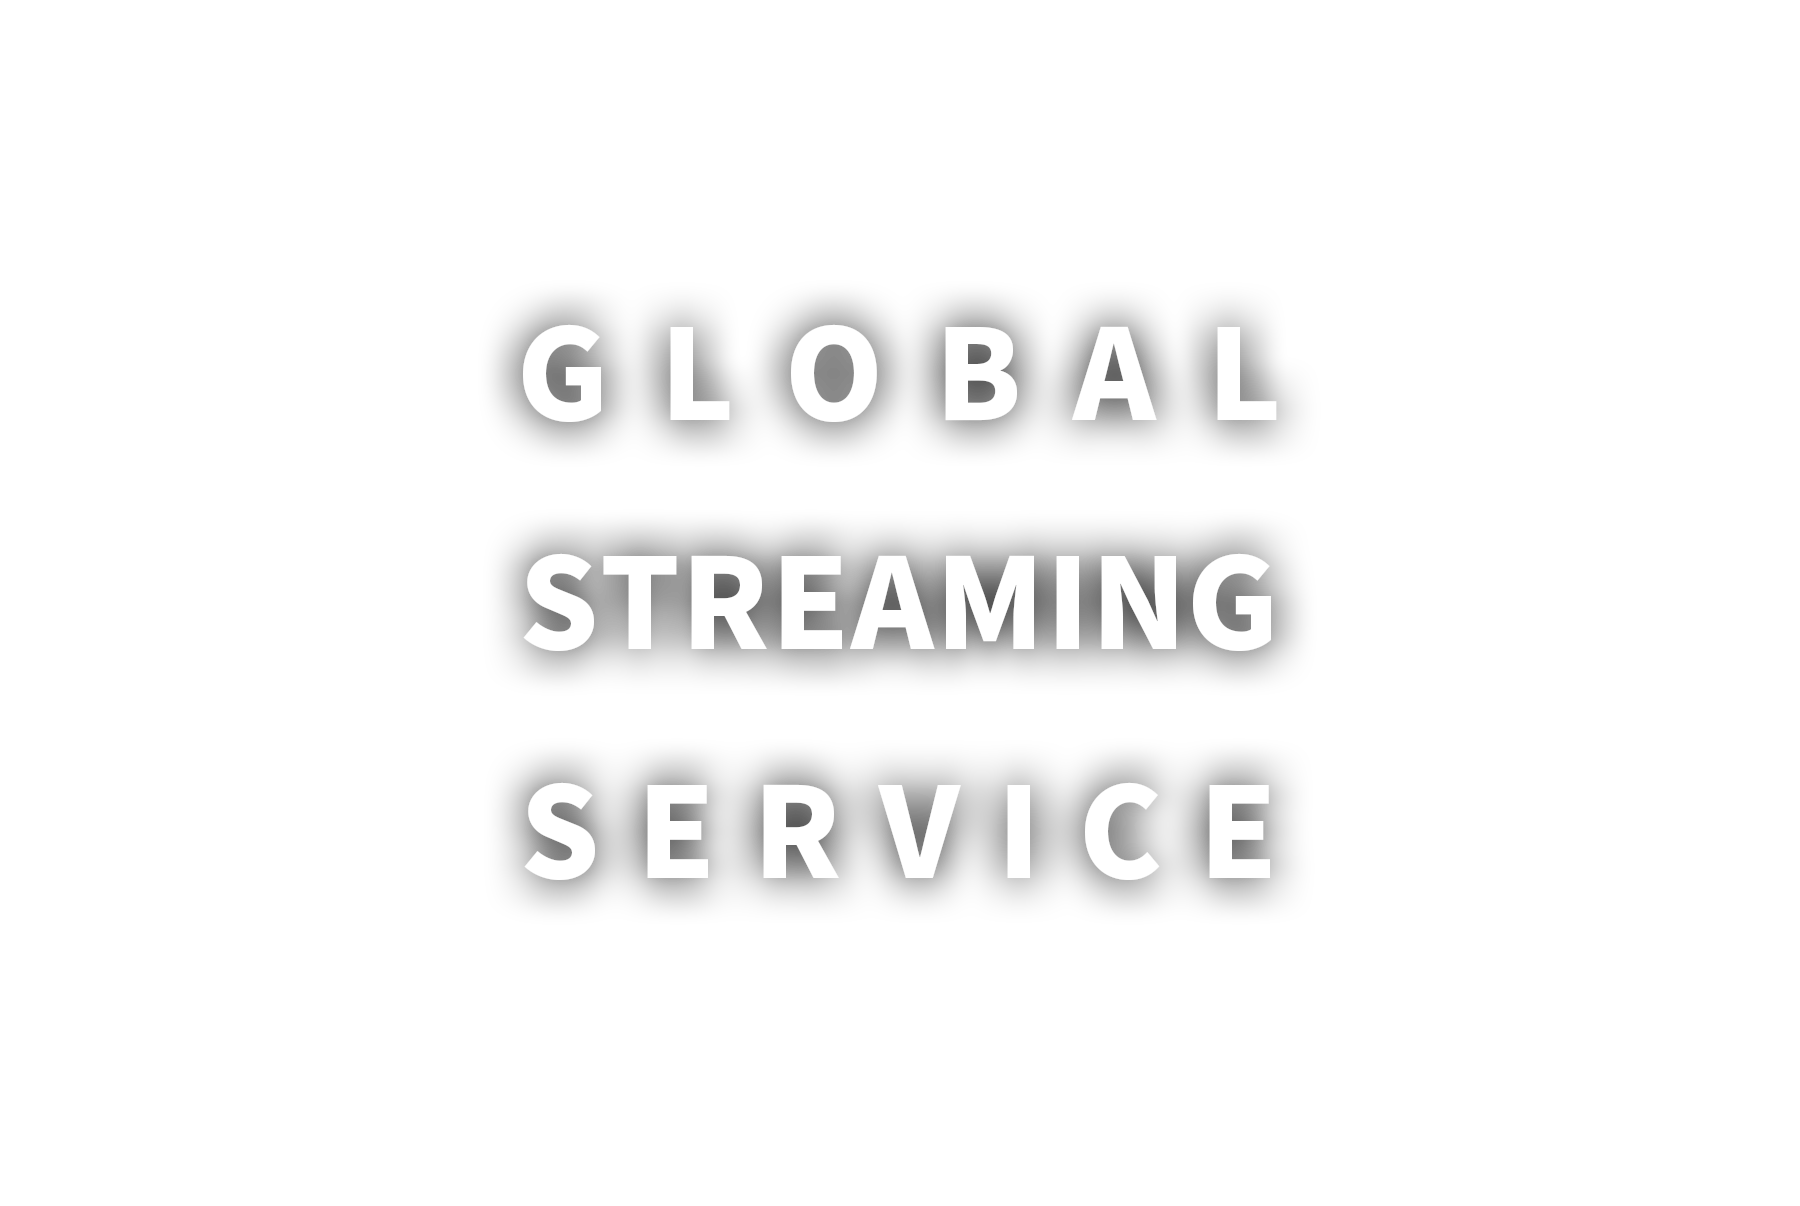 global streaming service